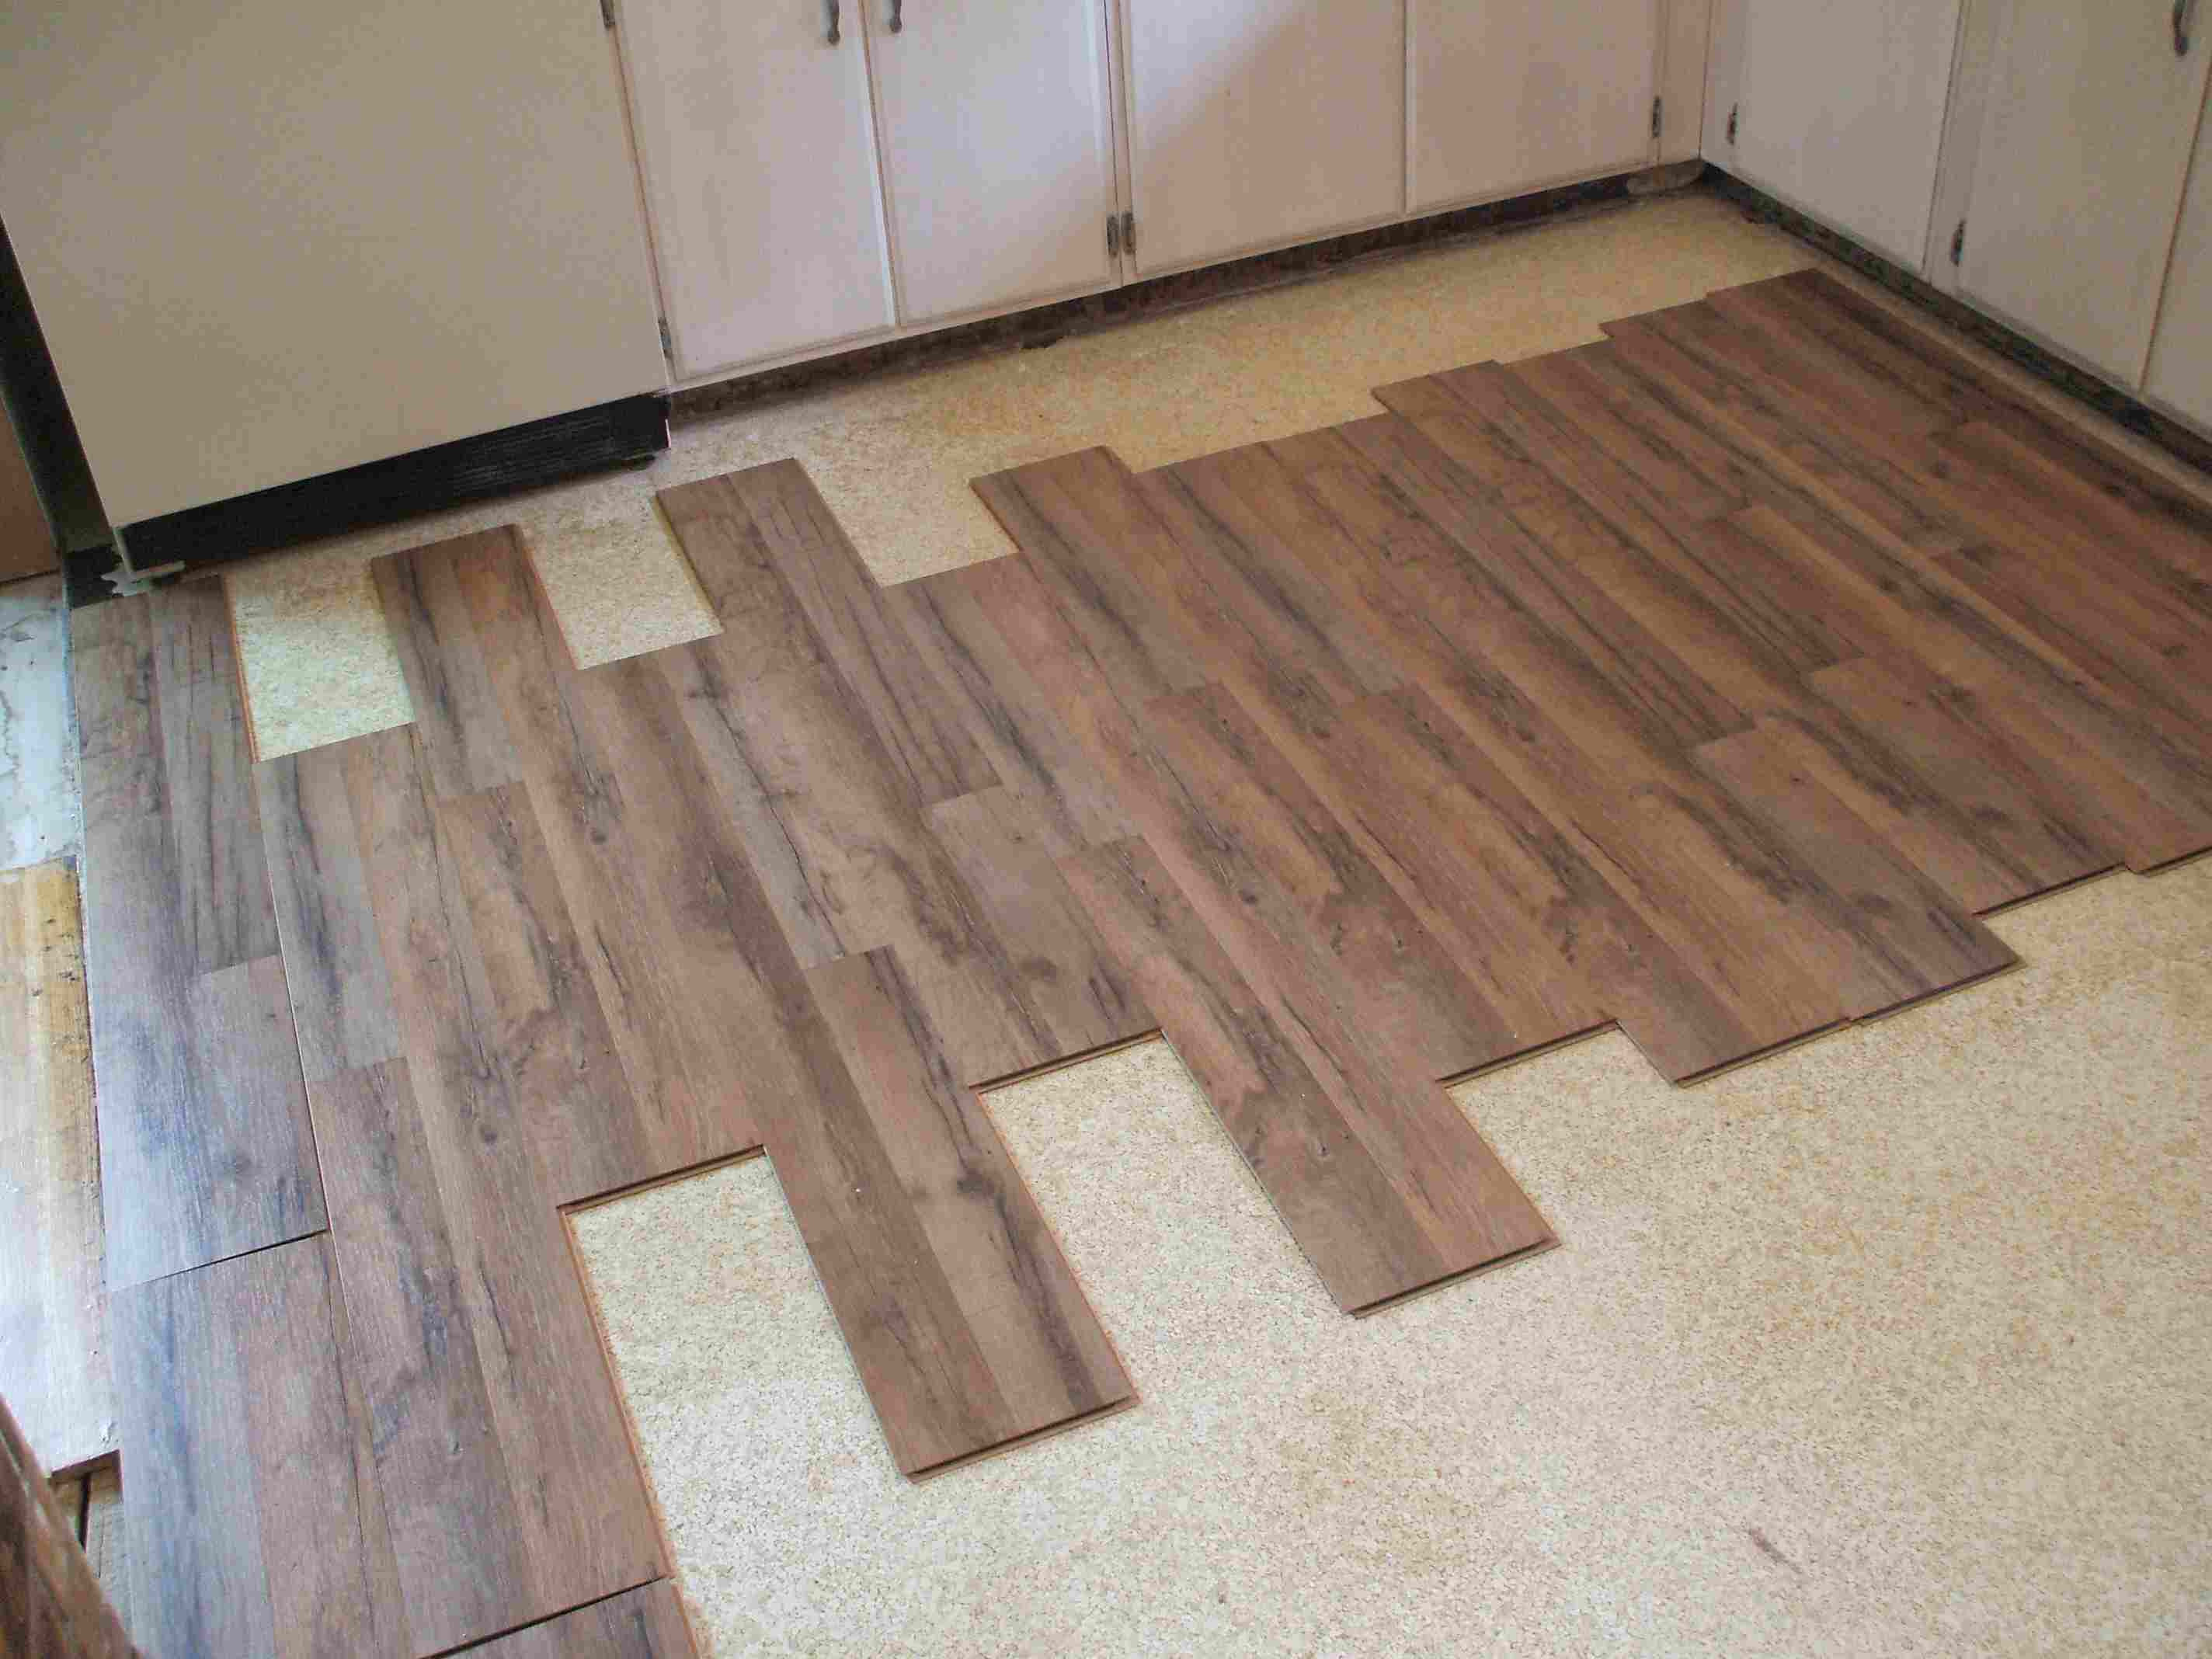 Hardwood Floor Around Stairs Of Laminate Flooring Installation Made Easy In Installing Laminate Eyeballing Layout 56a49d075f9b58b7d0d7d693 Jpg